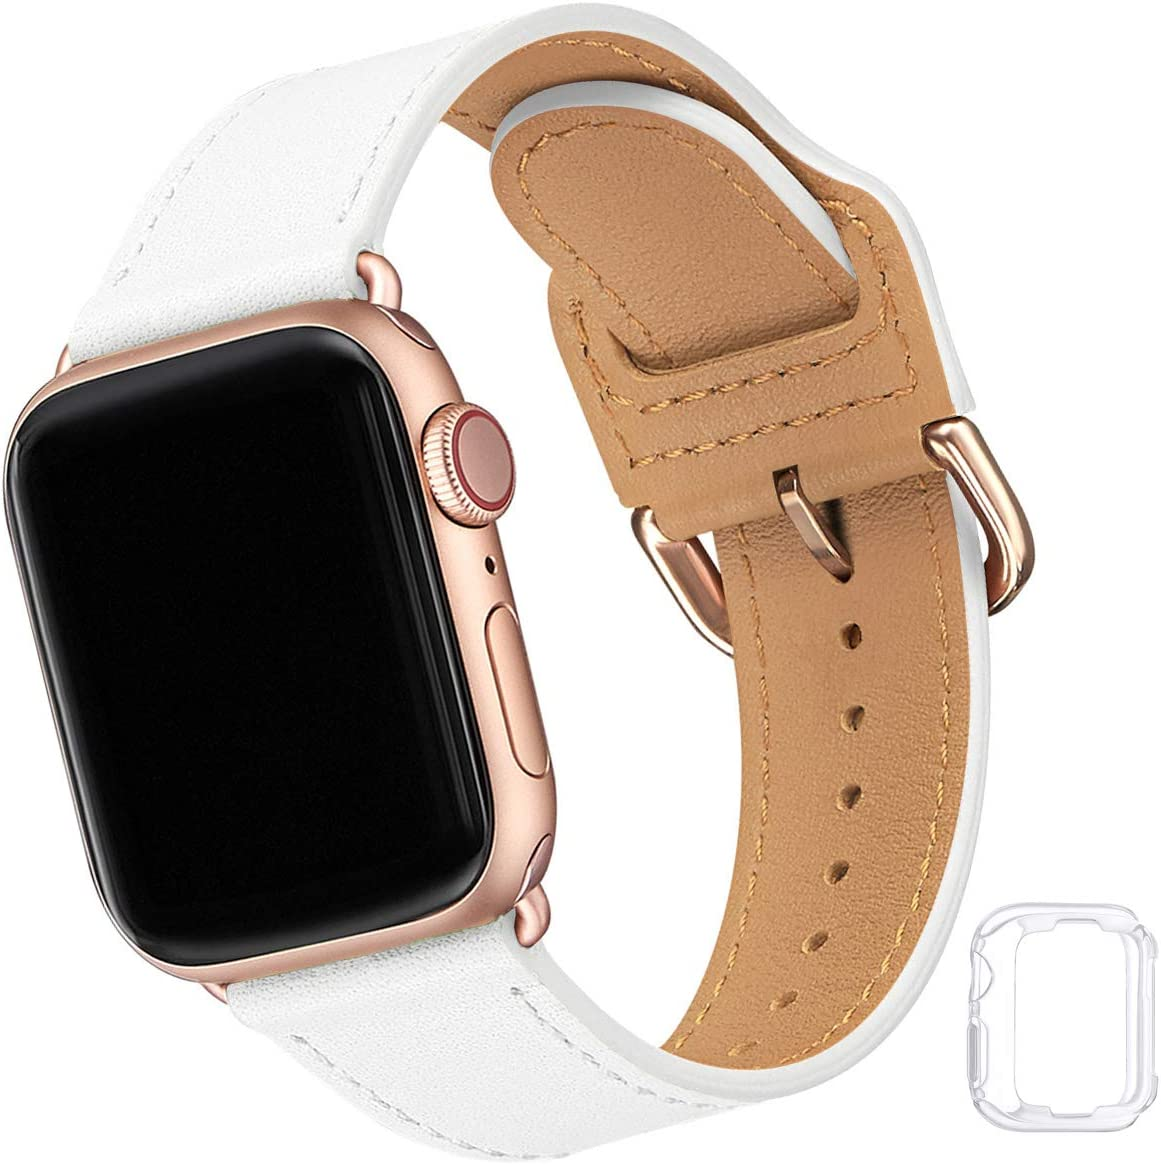 Compatible with Apple Watch Band 38mm 40mm 42mm 44mm, Soft Leather Watch Band Replacement Strap for iWatch SE Series 6 5 4 3 2 1 (White with Rose Gold, 38MM/40MM)